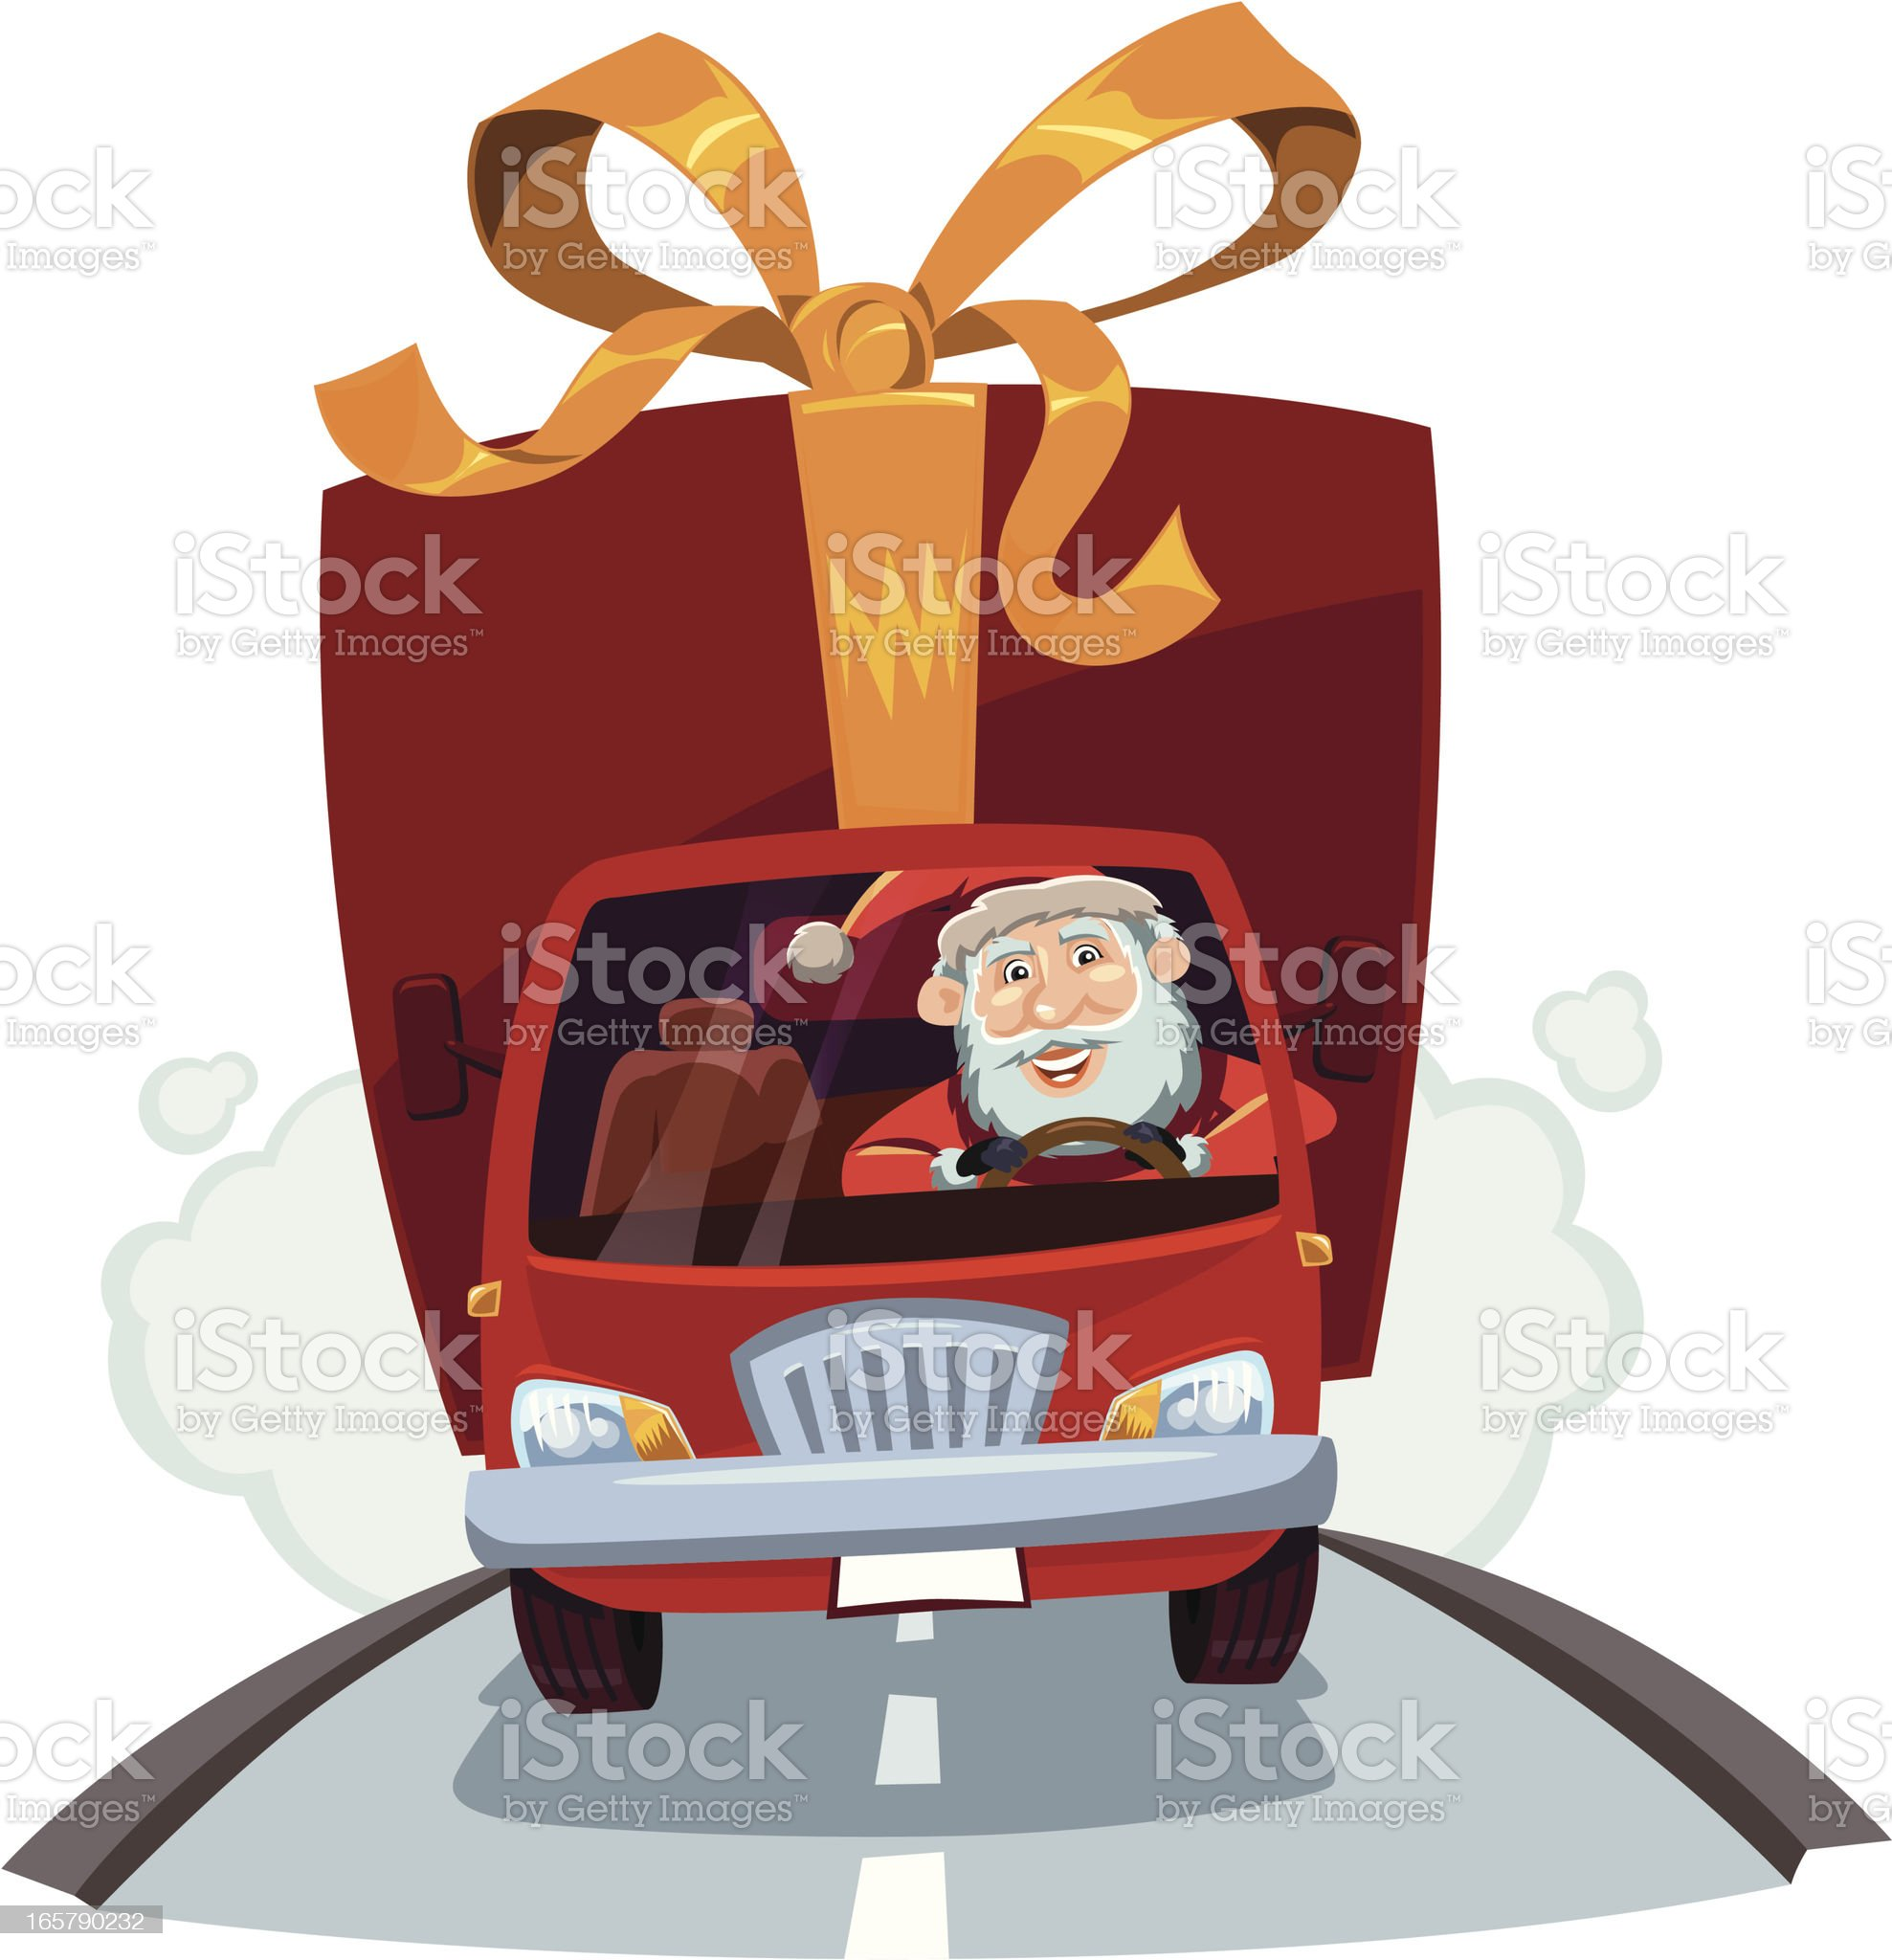 Santa's delivering christmas gifts by truck royalty-free stock vector art